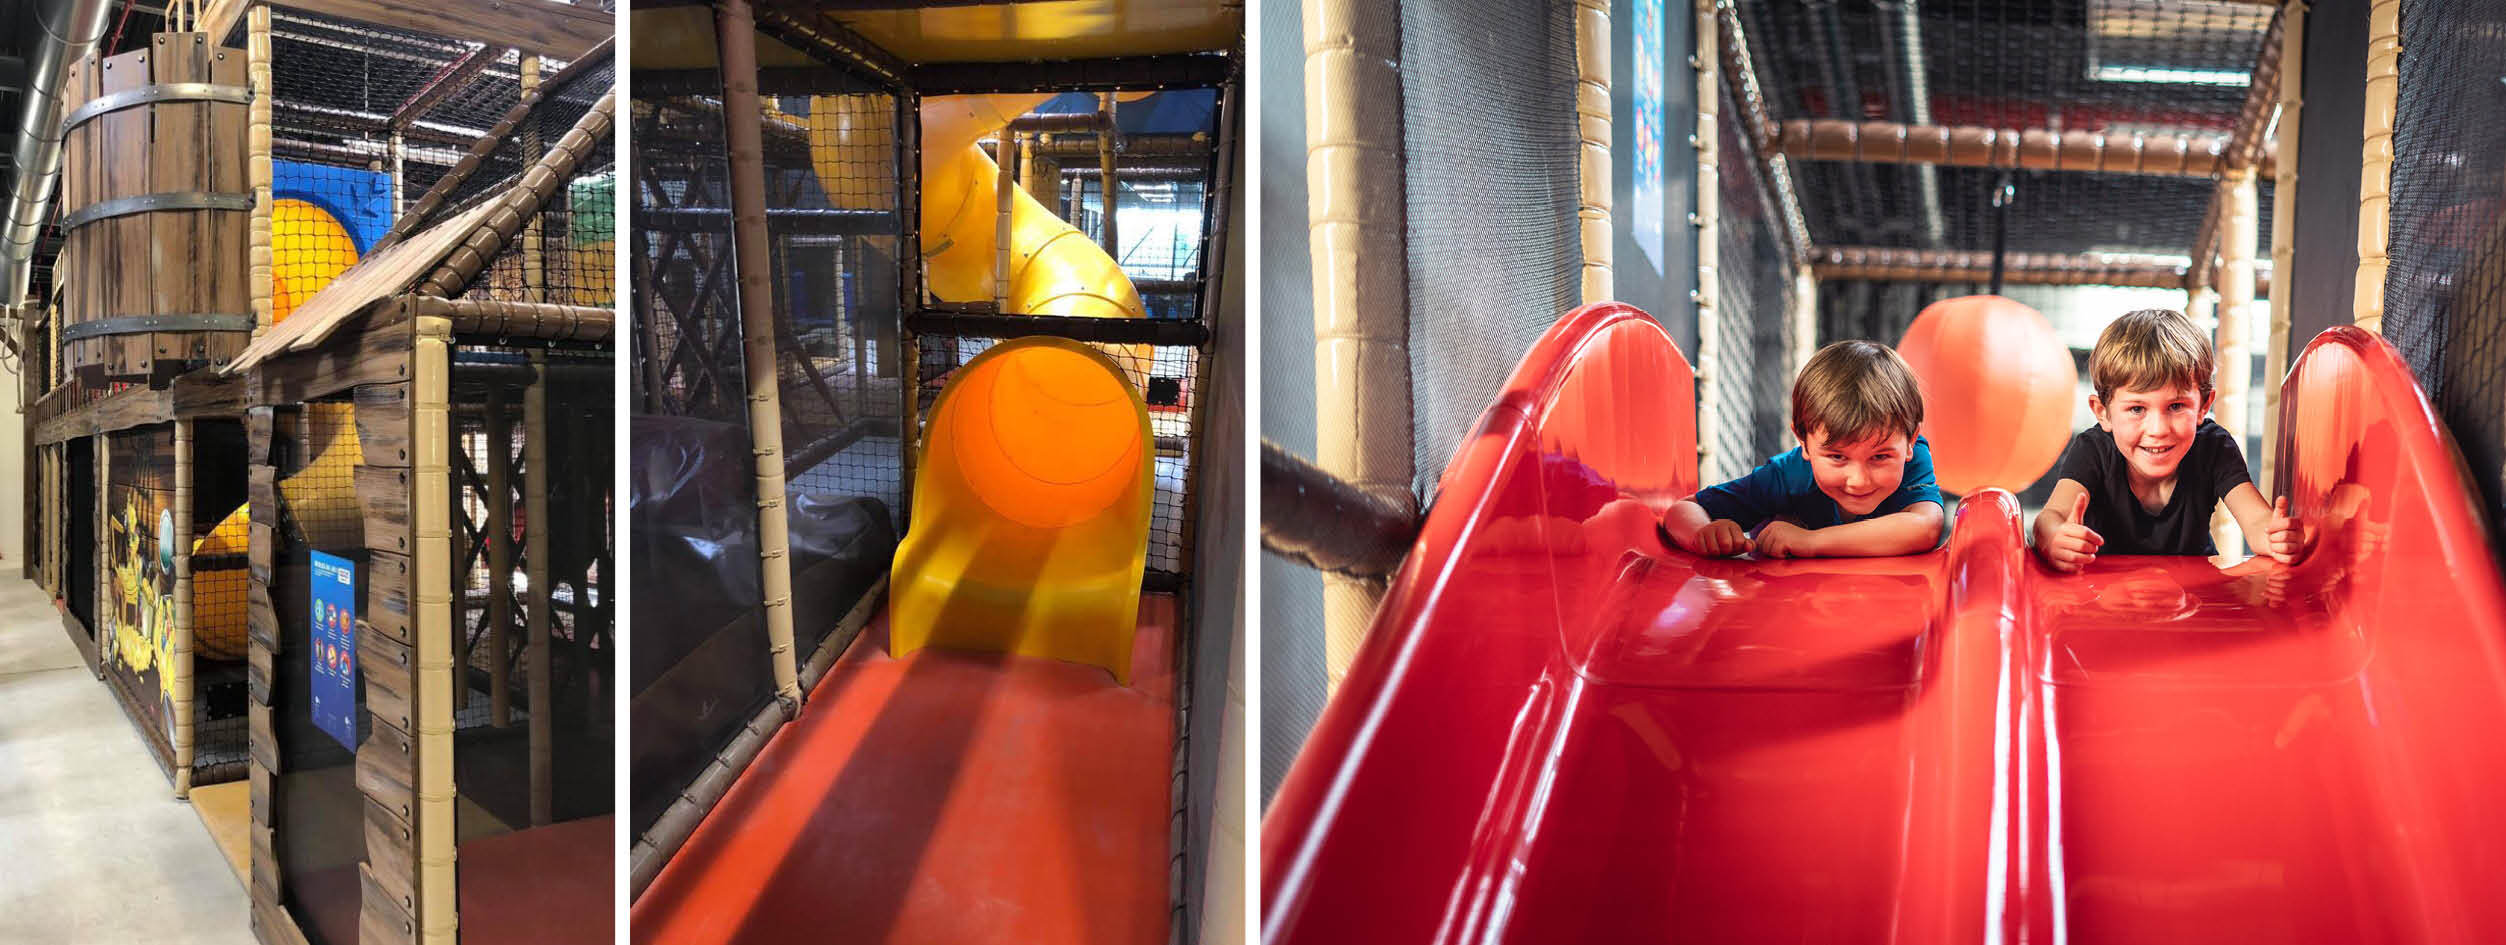 themed indoor playground UP2PLAY